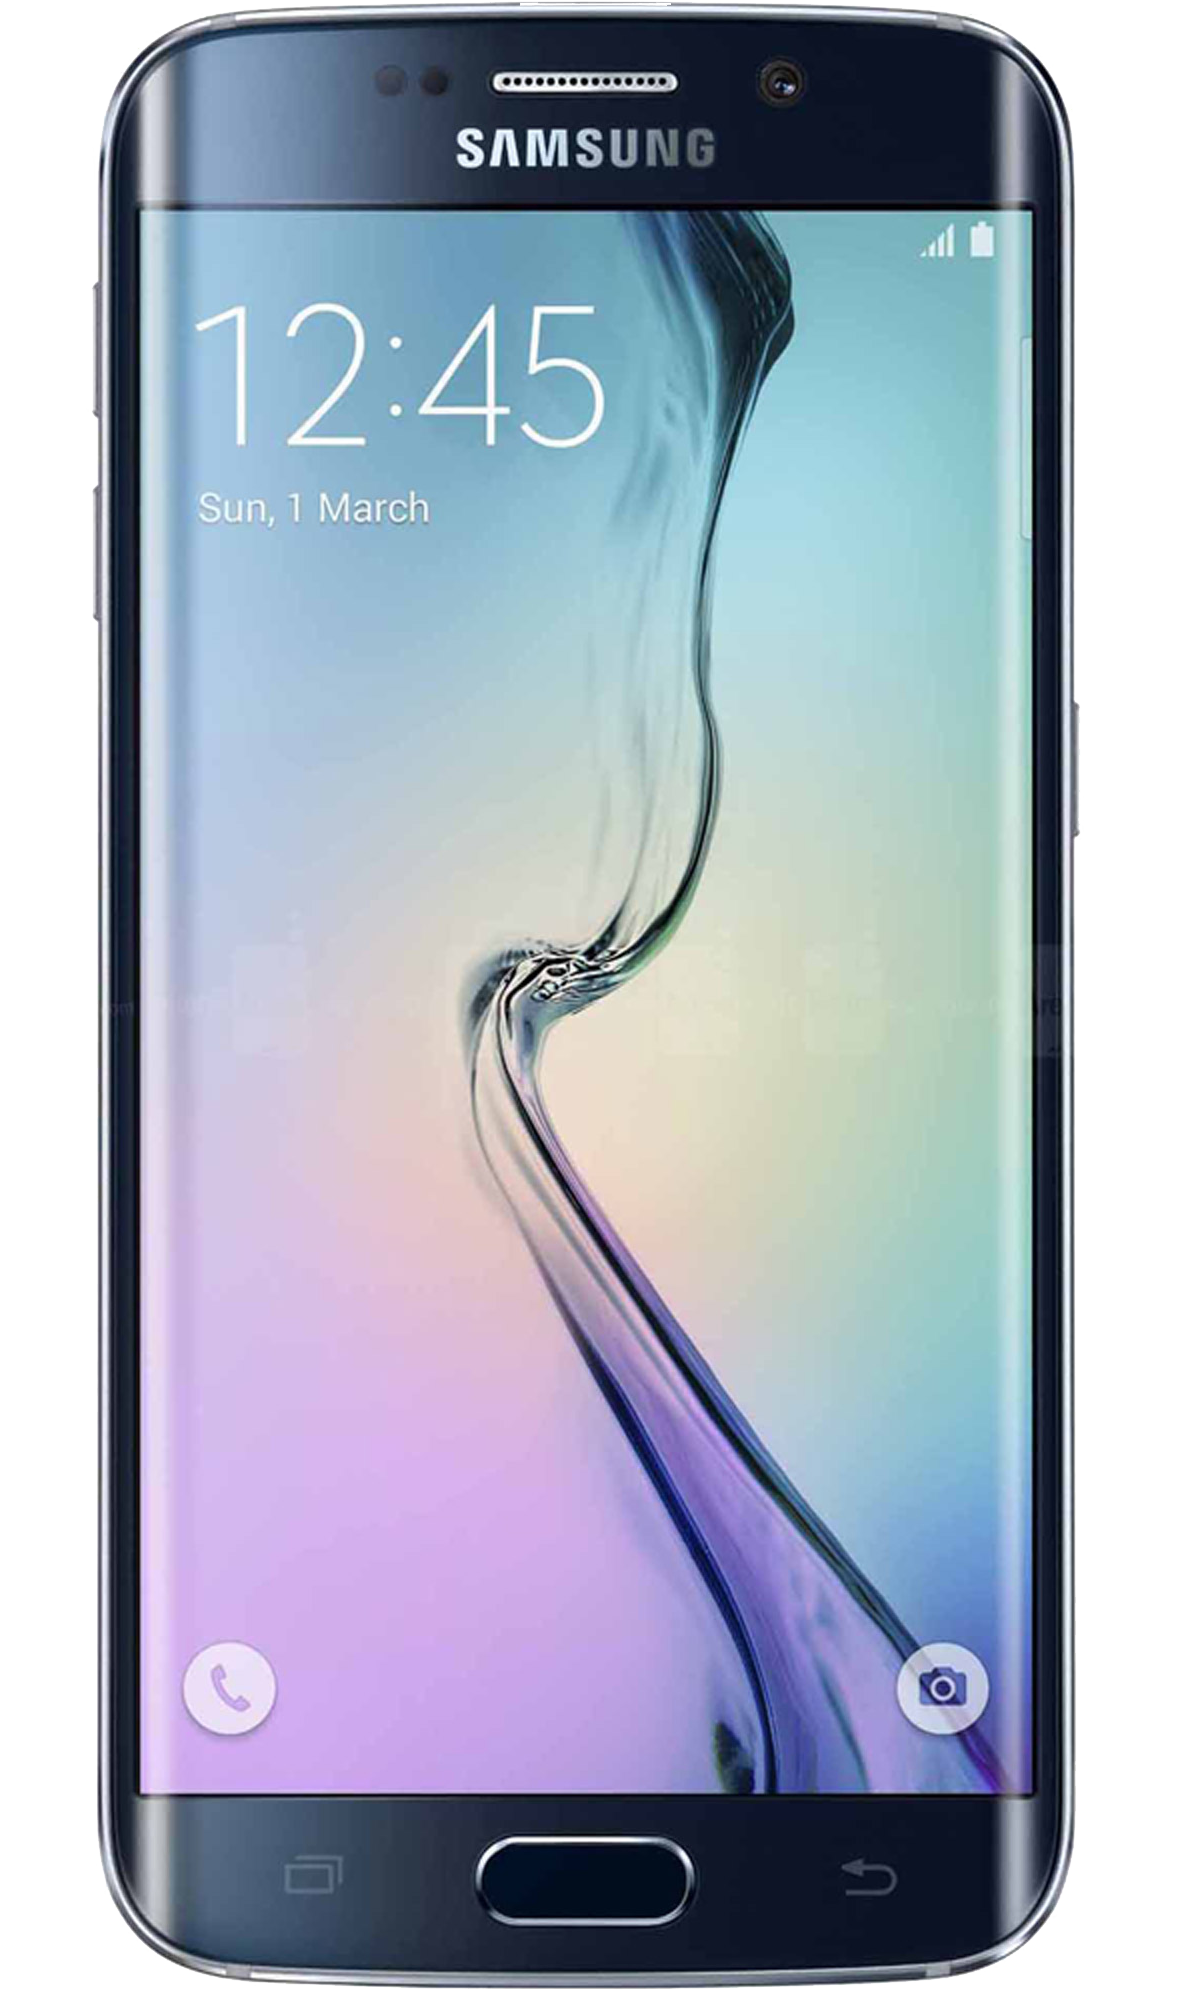 Buy Samsung Galaxy S6 Edge Mobile Phone At Best Price In Jordan S5 Super Amoled Touchsreen 16m Colors Quad Core 25 Ghz Processor 2g Ram Cozmo